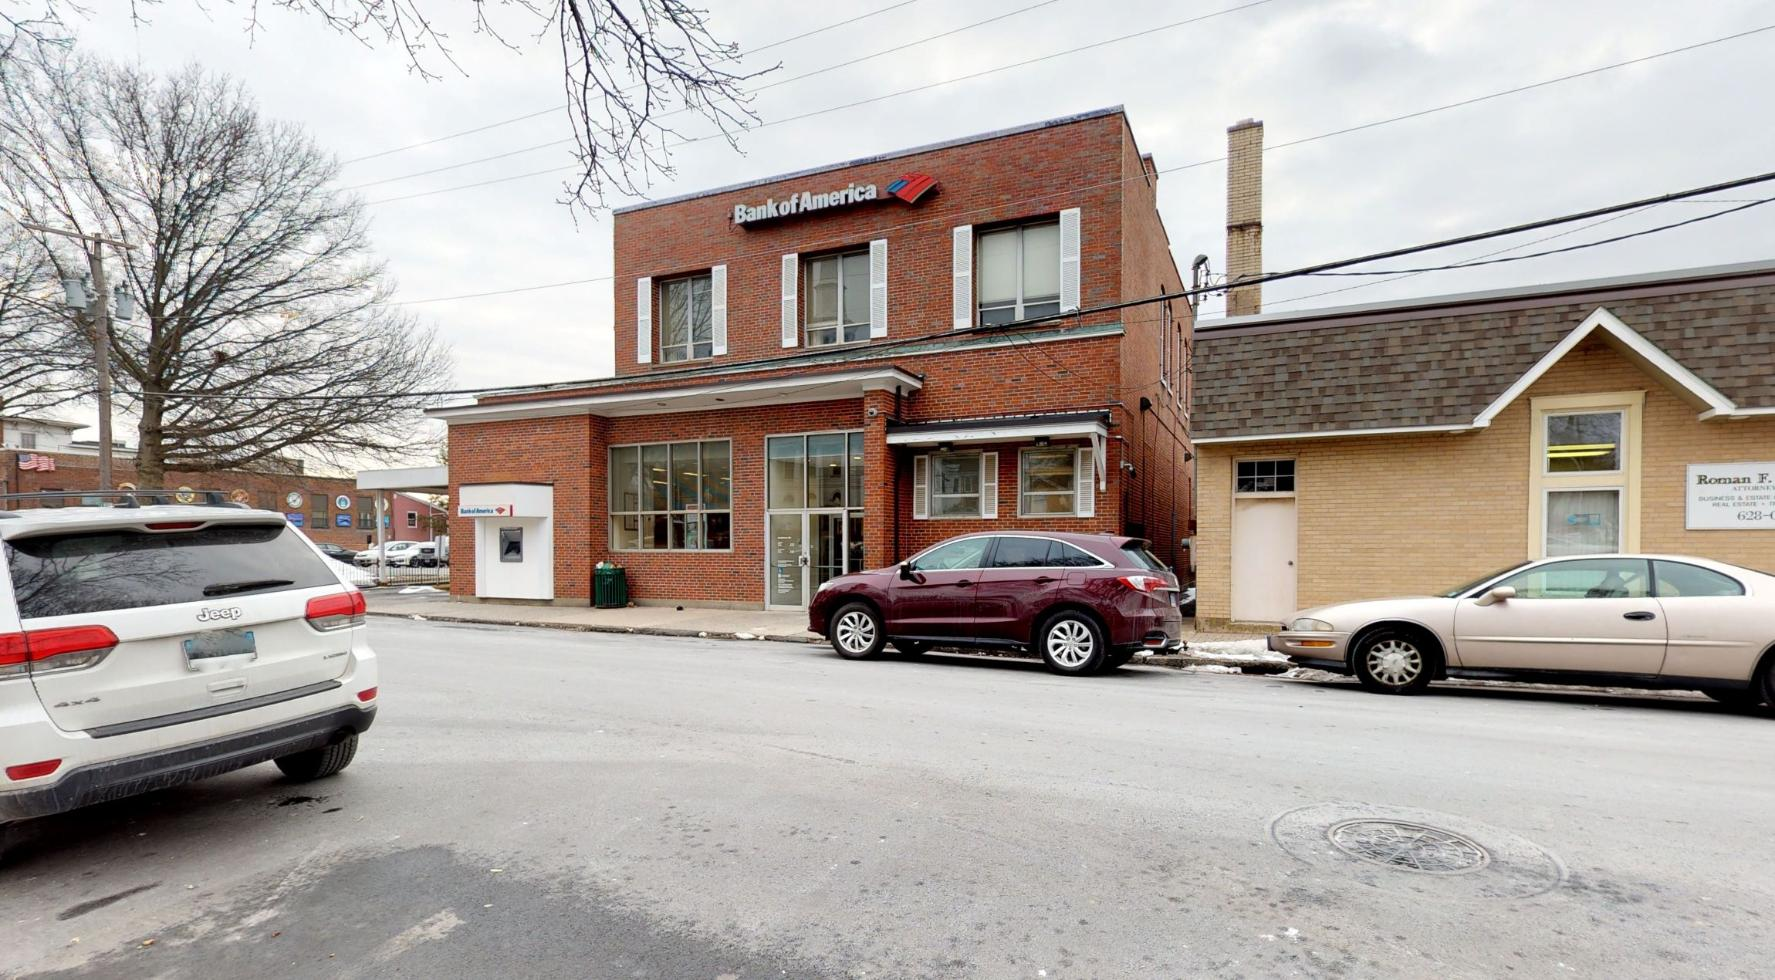 Bank of America financial center with drive-thru ATM | 22 Main St, Southington, CT 06489